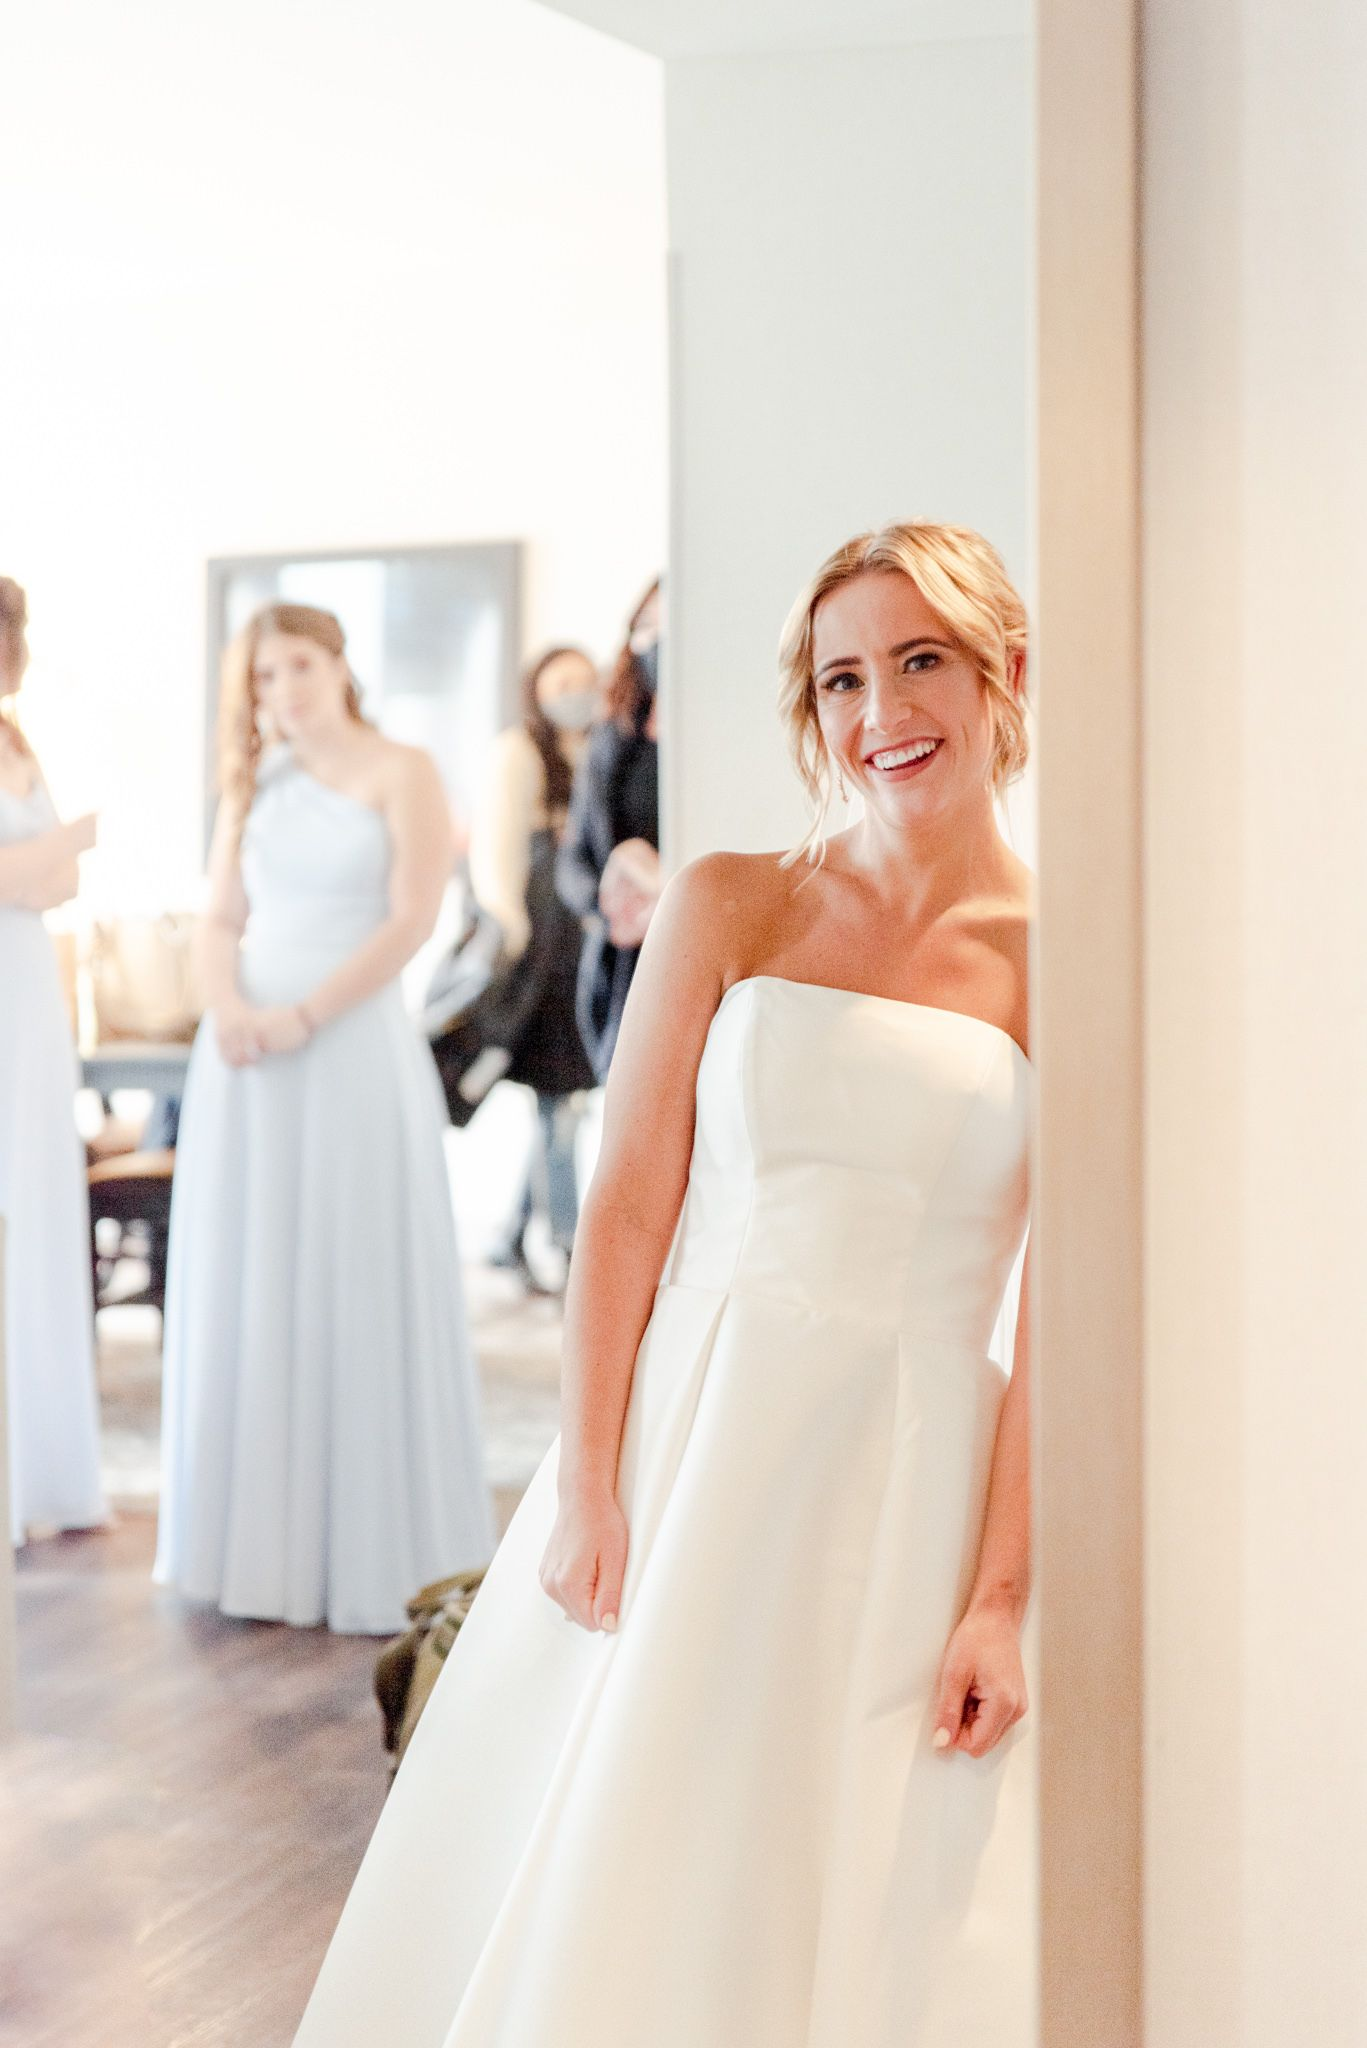 blonde bride with updo smiling at herself in the mirror as bridesmaids watch from the background